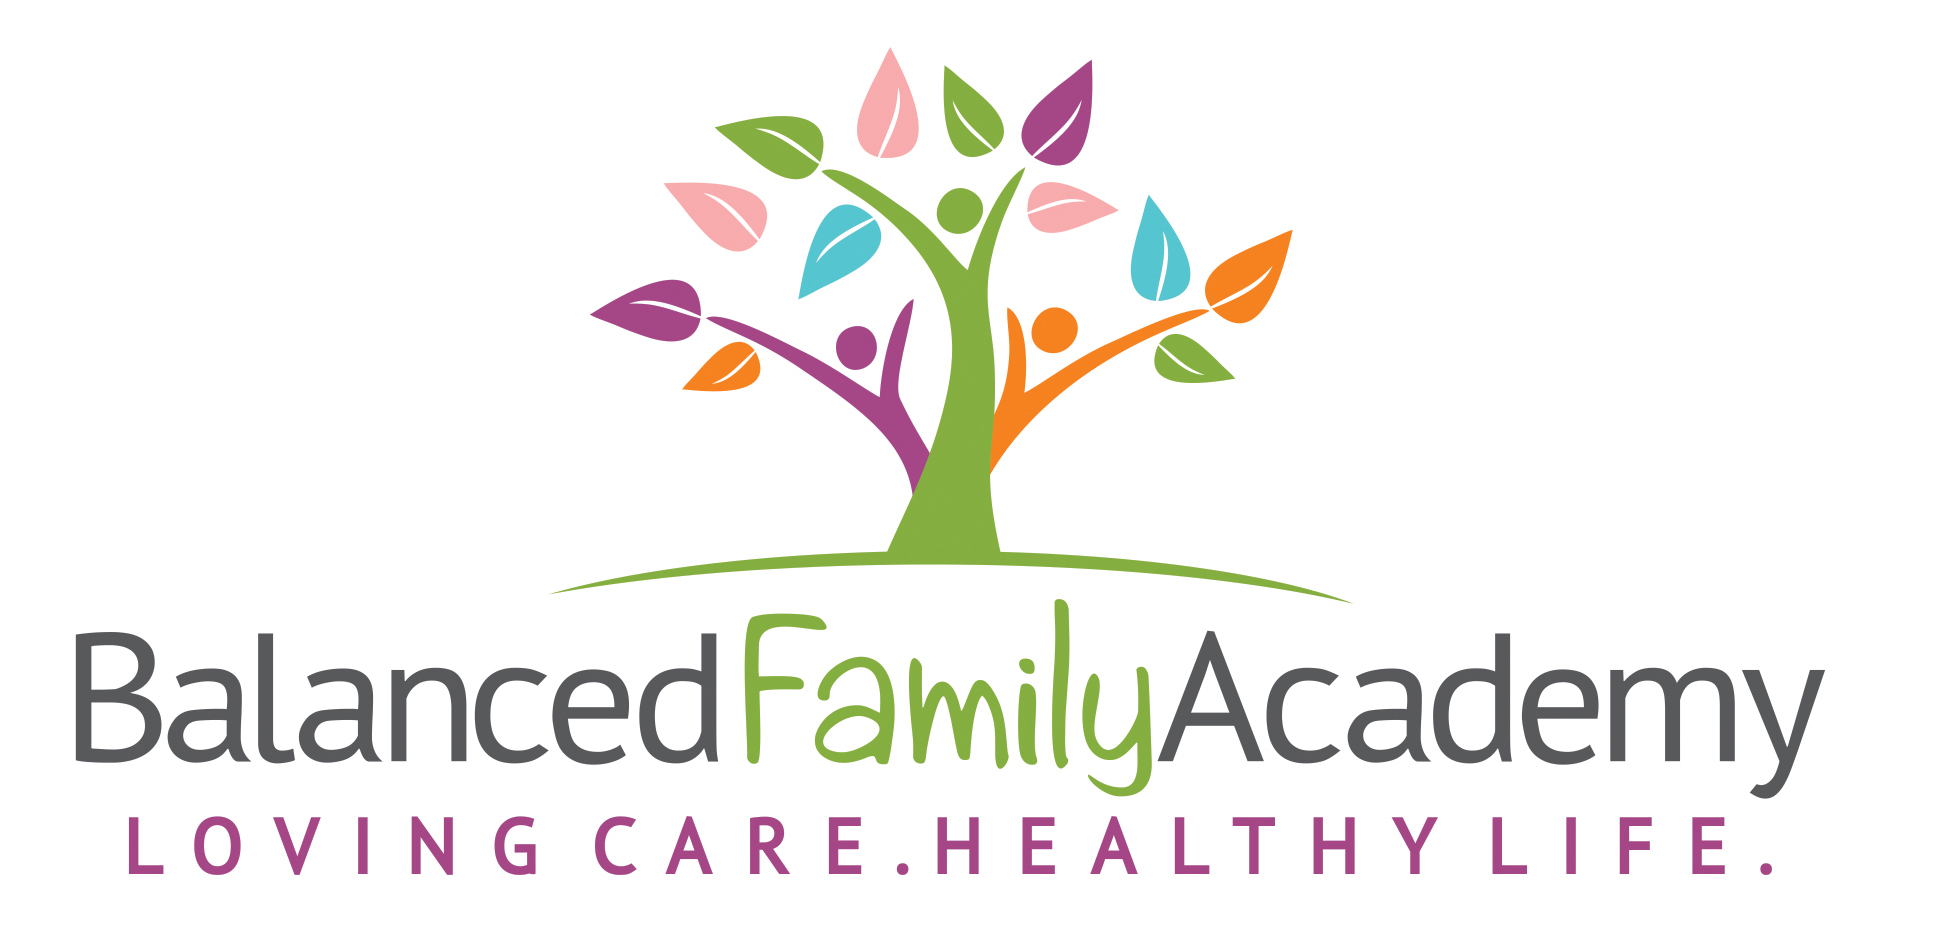 Balanced Family Academy